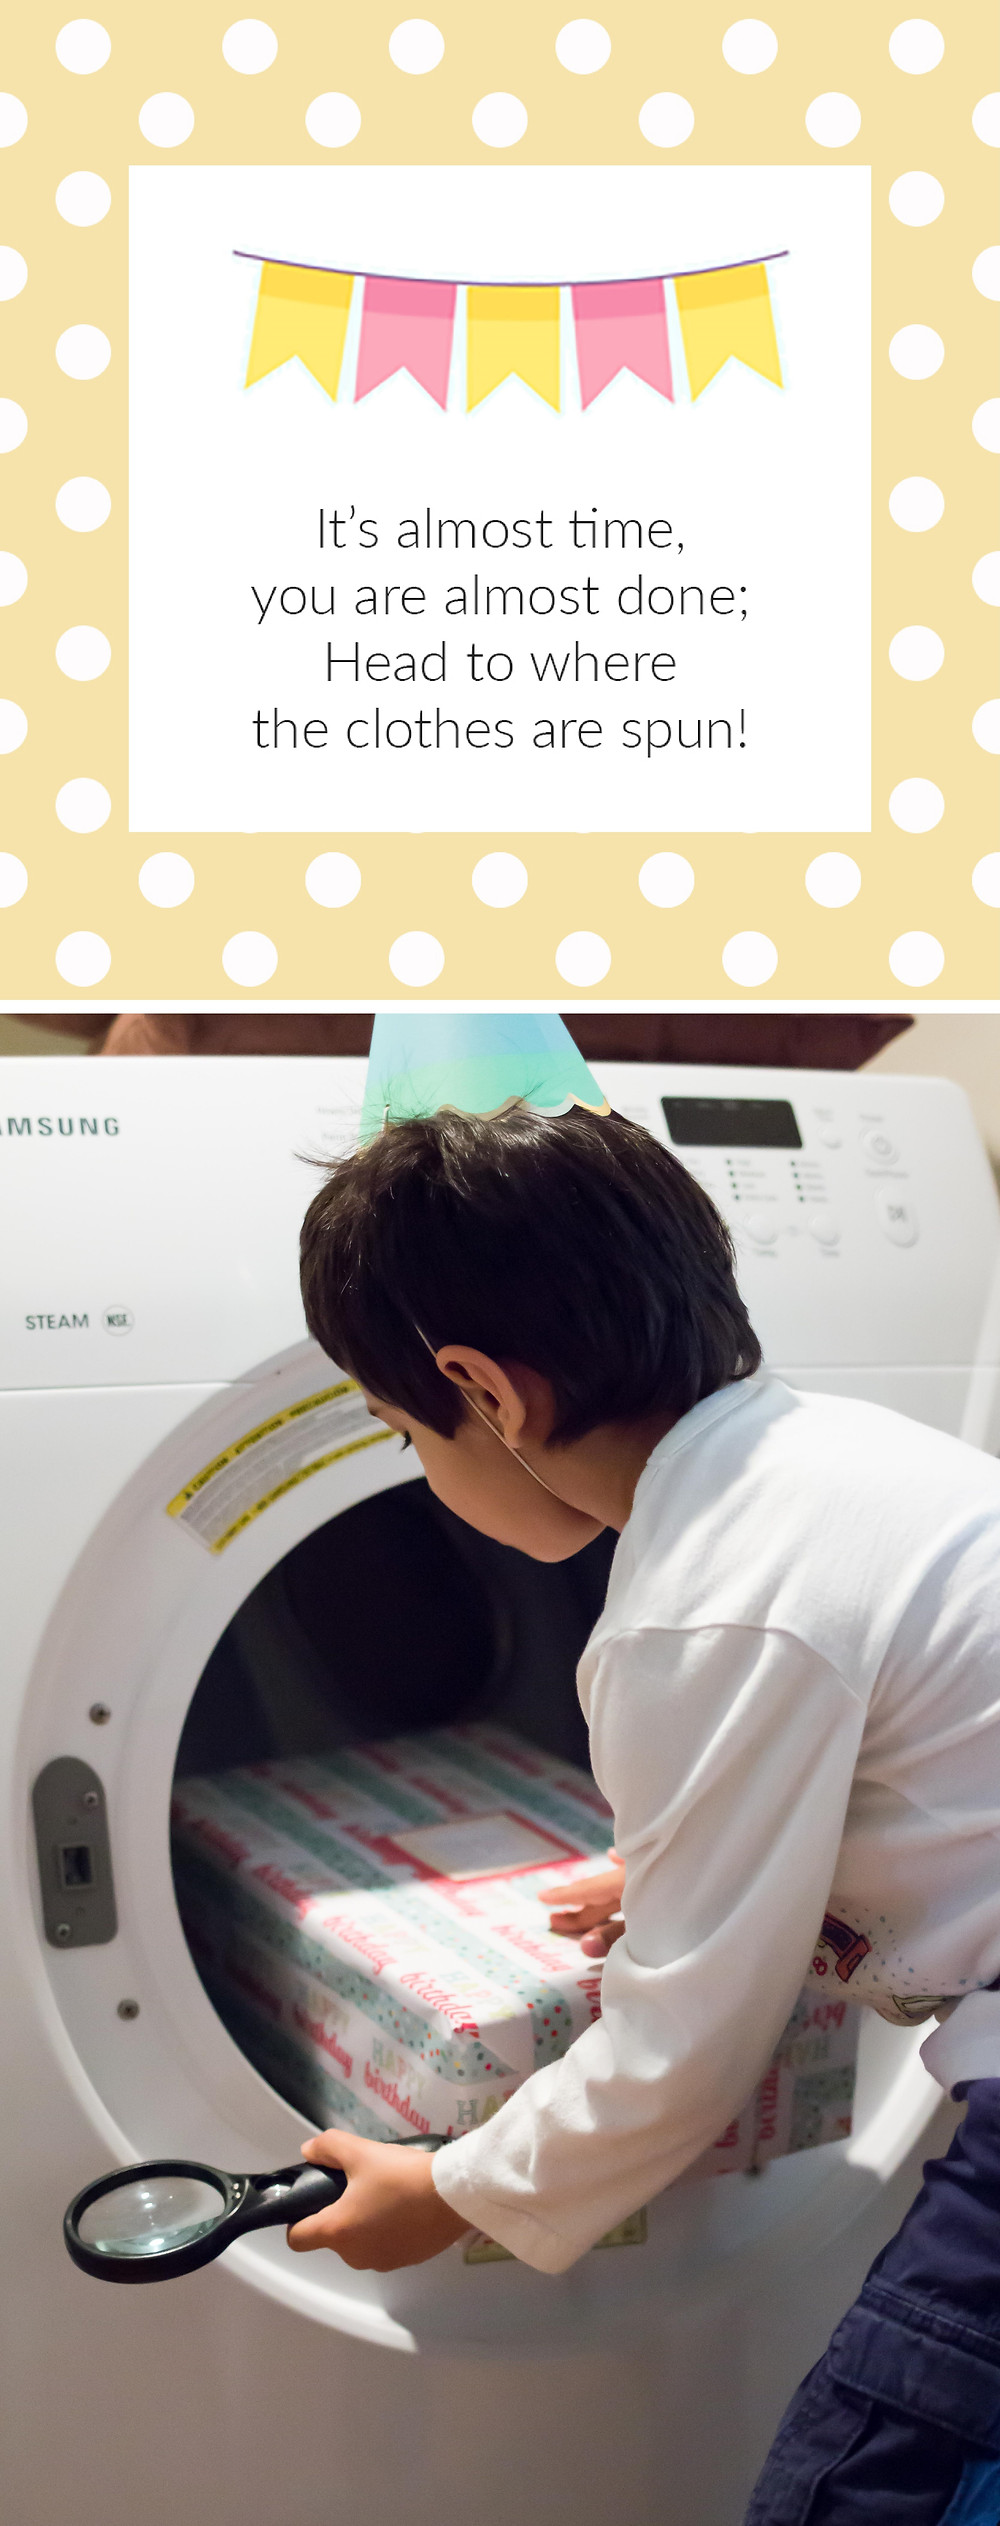 washer or dryer?